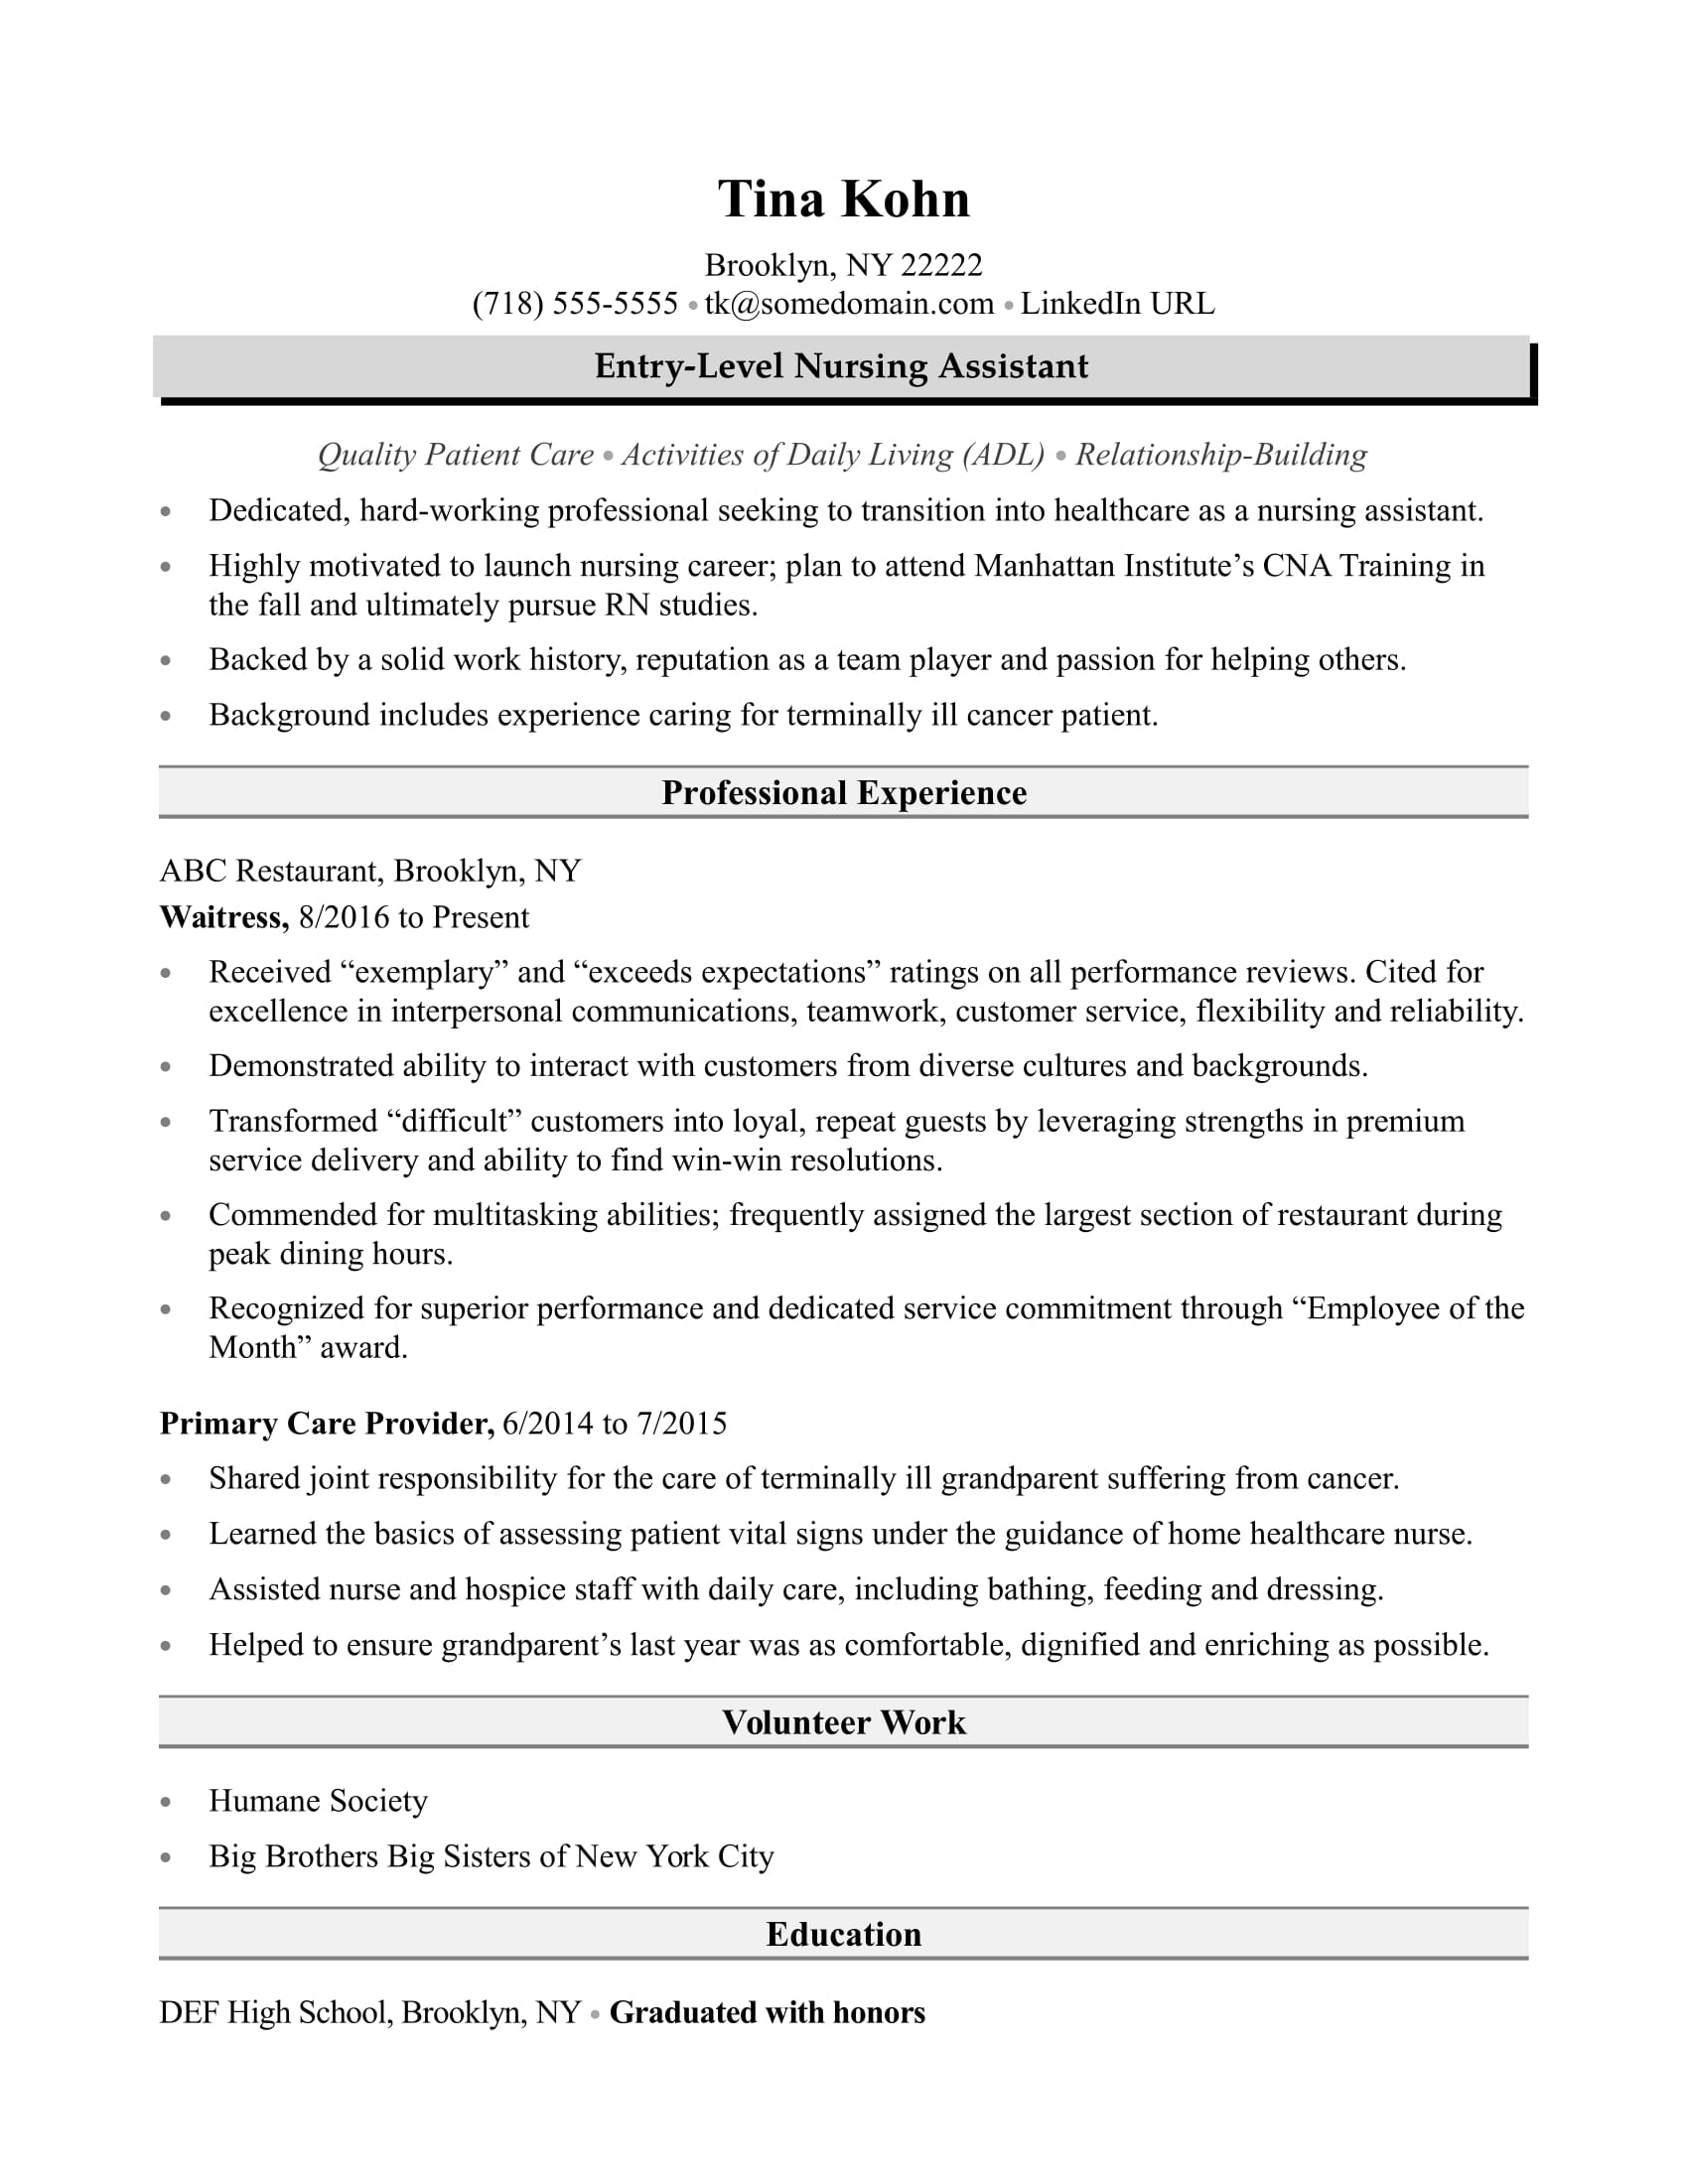 nursing assistant resume sample monster certified detail oriented skills notary public on Resume Certified Nursing Assistant Resume Sample